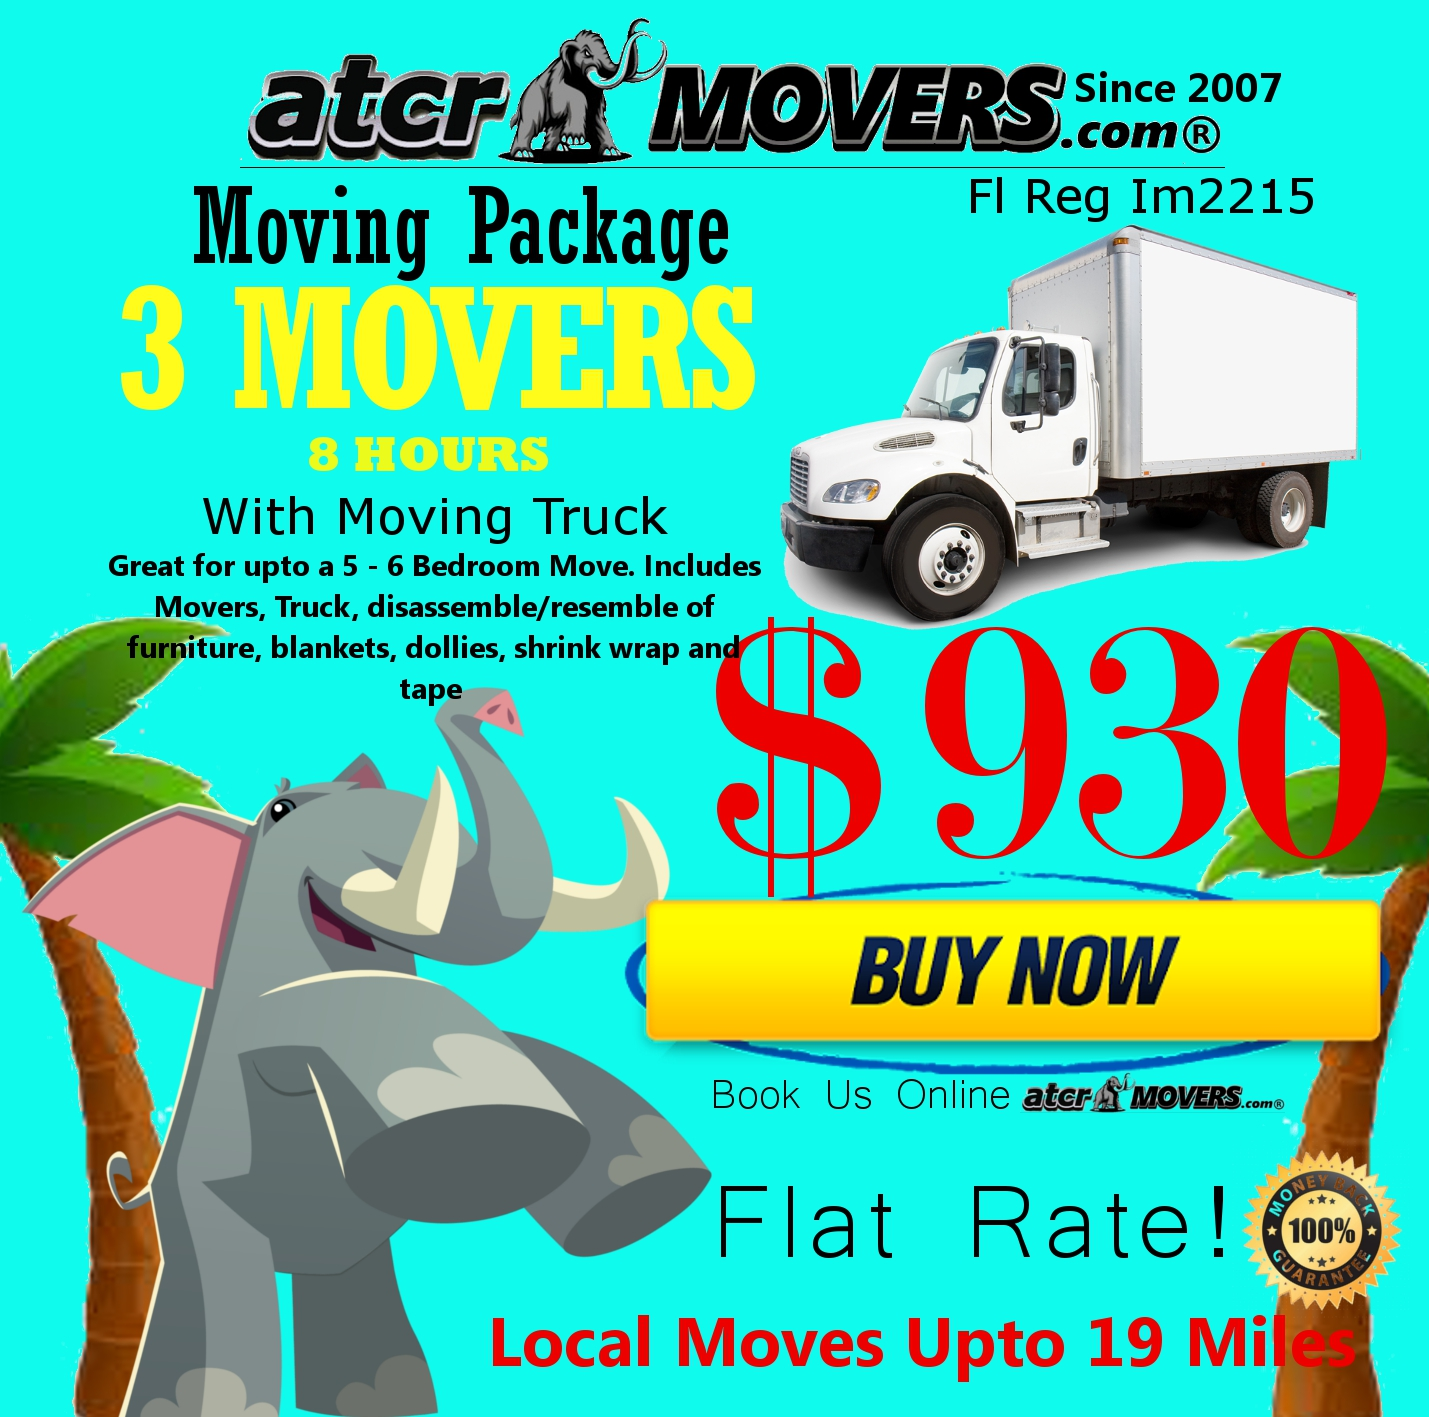 ATCR MOVERS 3 MOVERS 8 HOURS $930